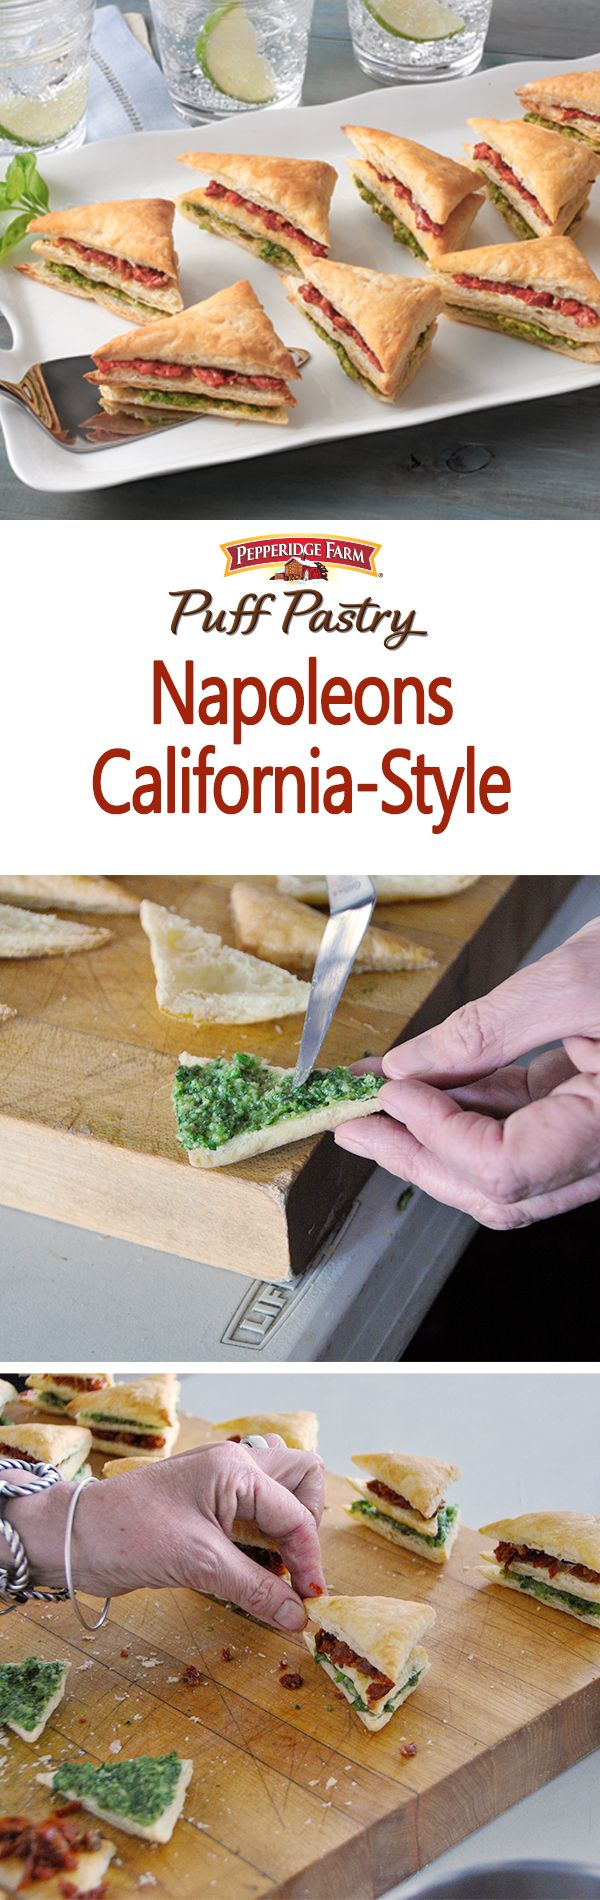 Puff Pastry Napoleons California-Style Recipe. It's summer and we're celebrating with some summer-time treats! Make these light and refreshing Napoleons with layers of bright basil pesto and Italian sun-dried tomatoes. While traditionally rectangular, these Napoleons were cut into little triangles for perfect, bite-size appetizers. Serve with a spritzer and enjoy the sunshine!